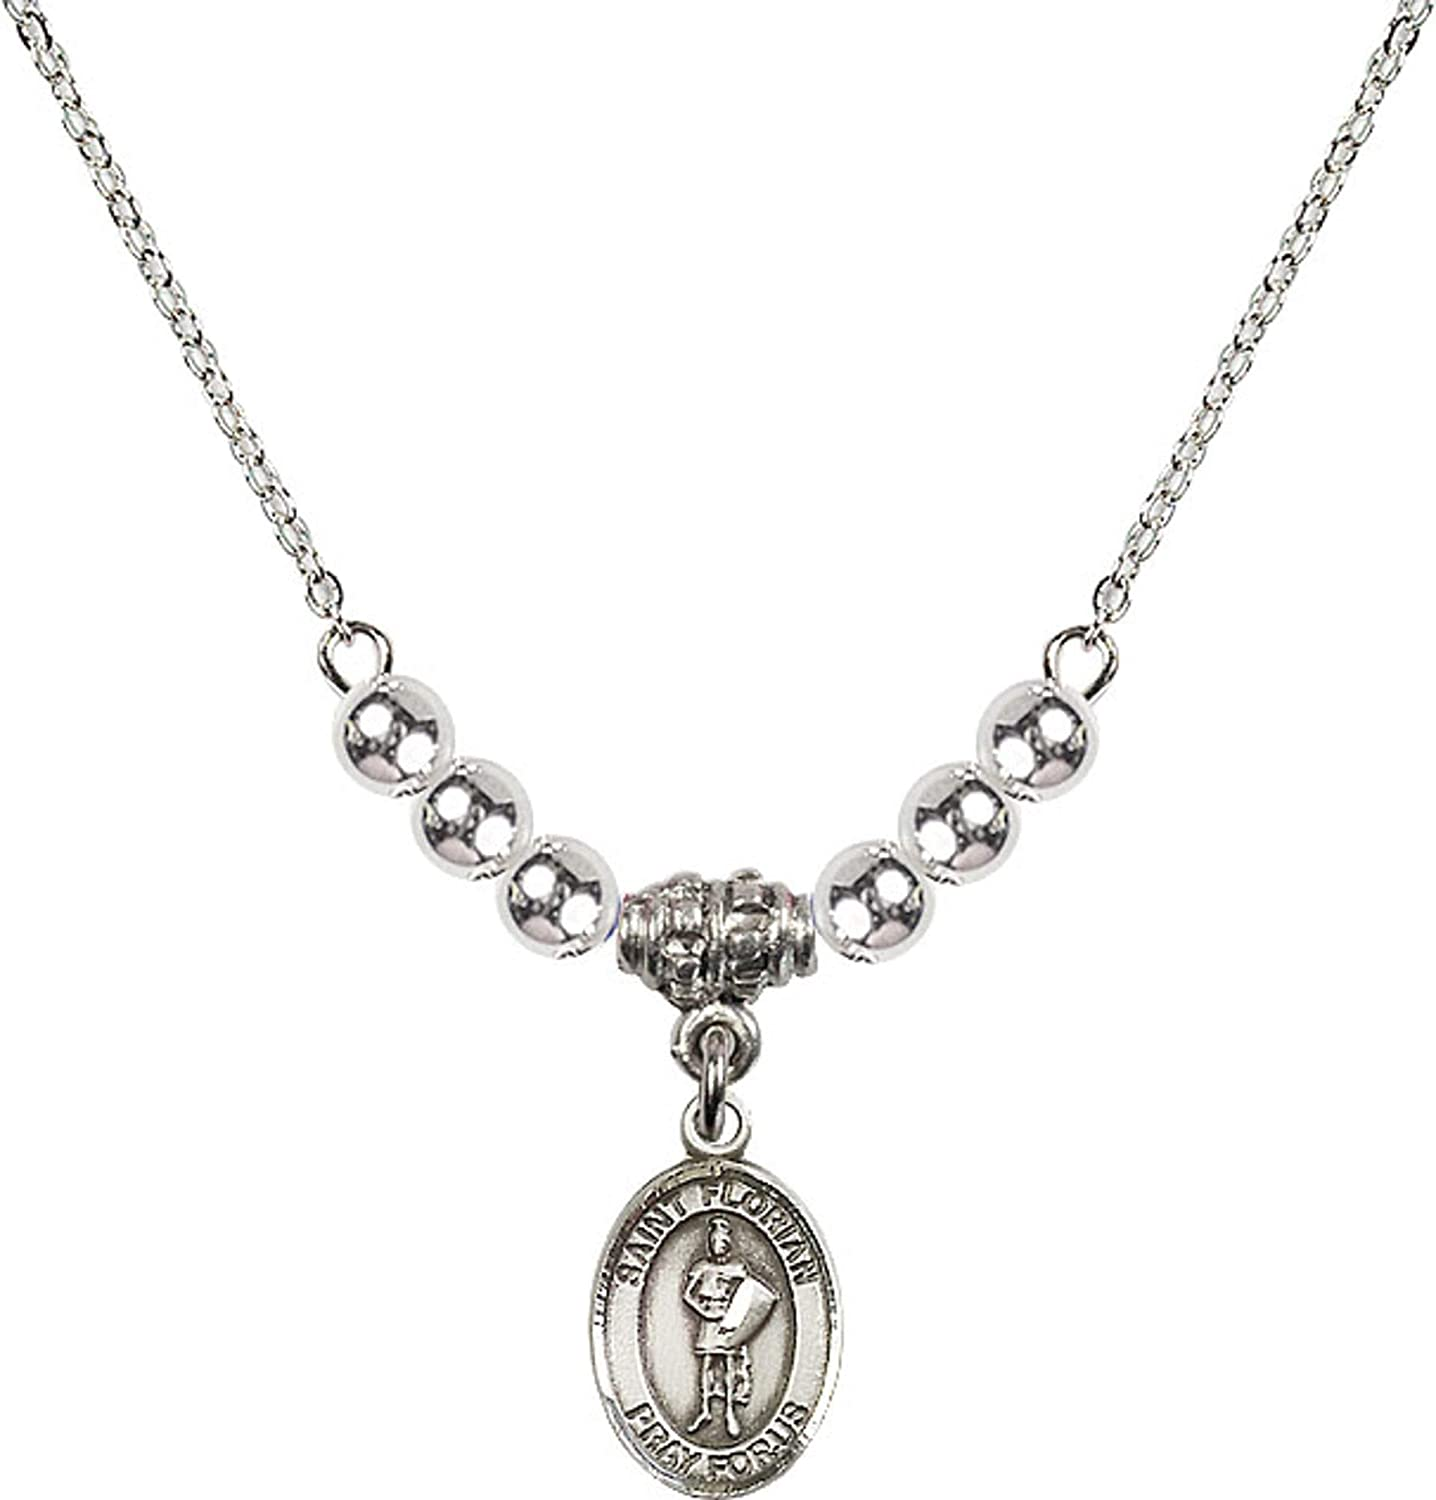 Bonyak Jewelry 18 Inch Rhodium Plated Necklace w// 4mm Sterling Silver Beads and Saint Florian Charm